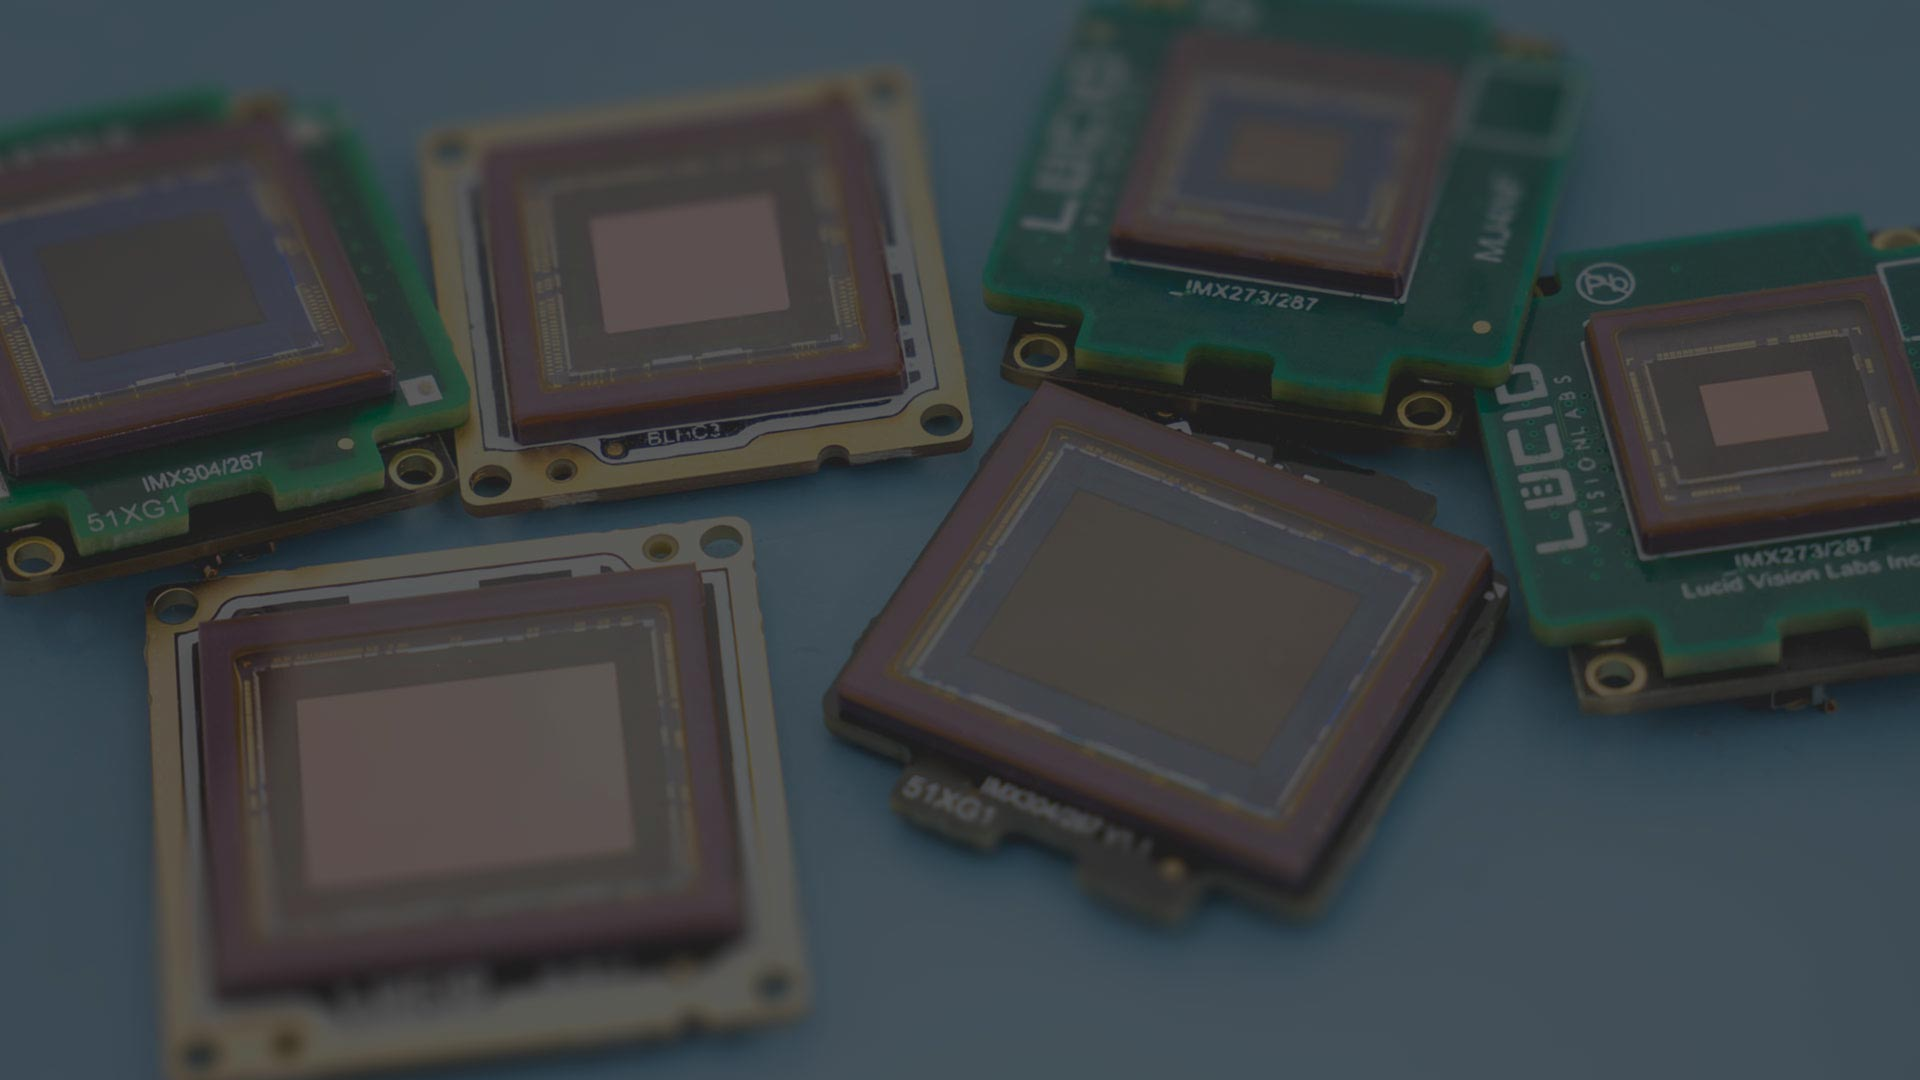 Sony Pregius S 4th Generation Sensors